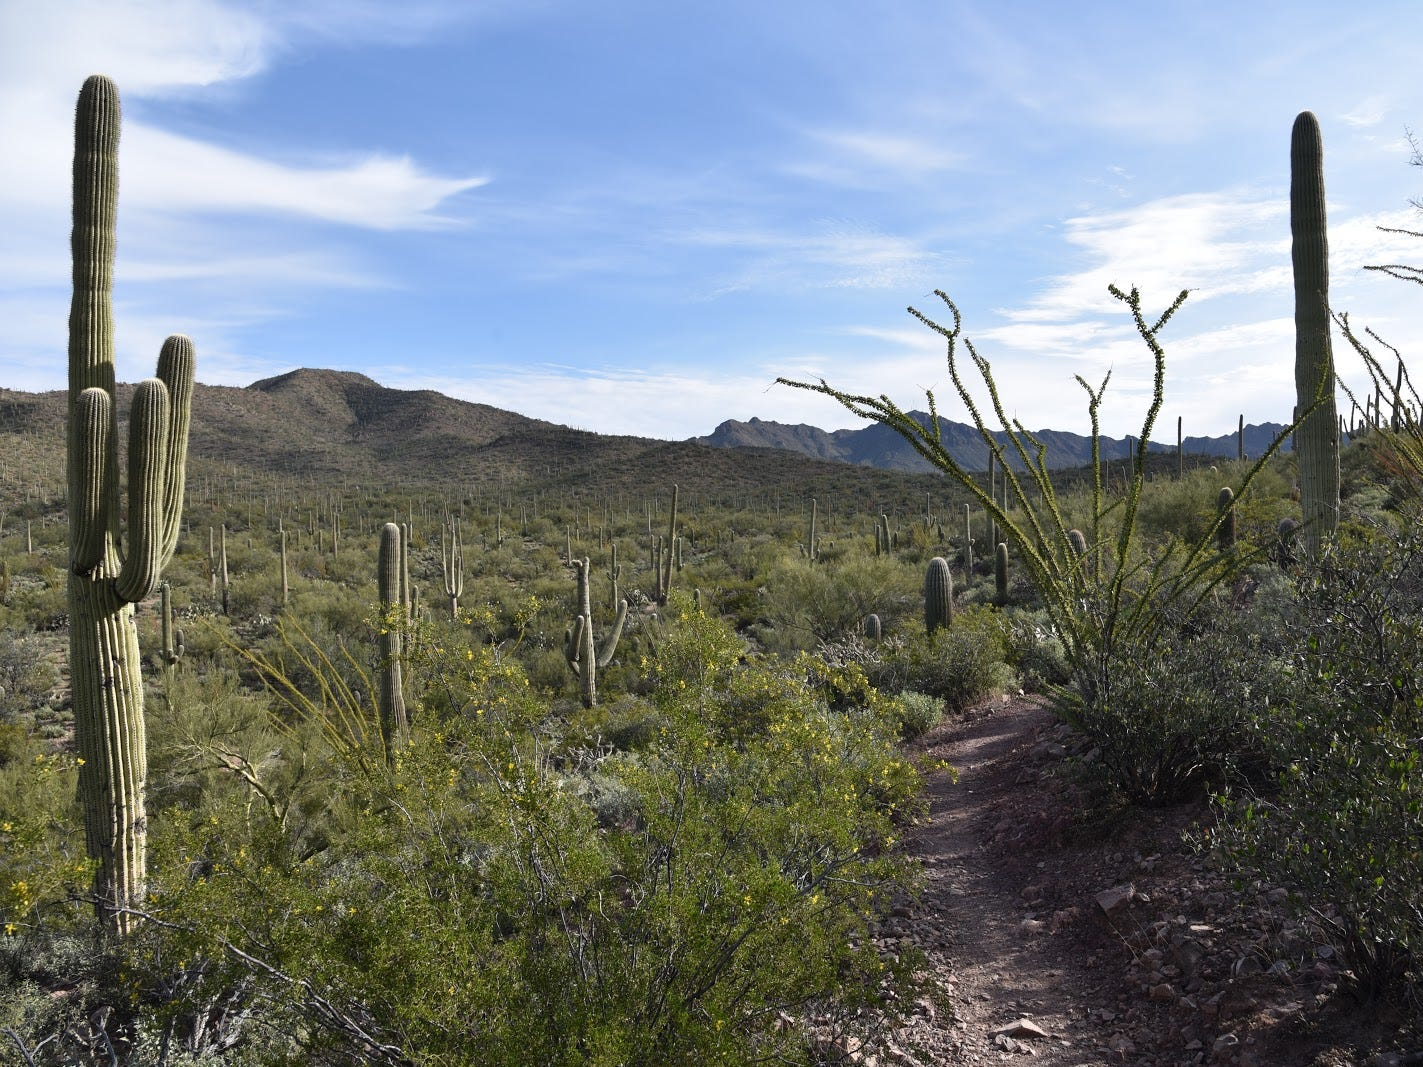 The lower leg of the Brown Mountain Trail features views of the Tucson Mountains.